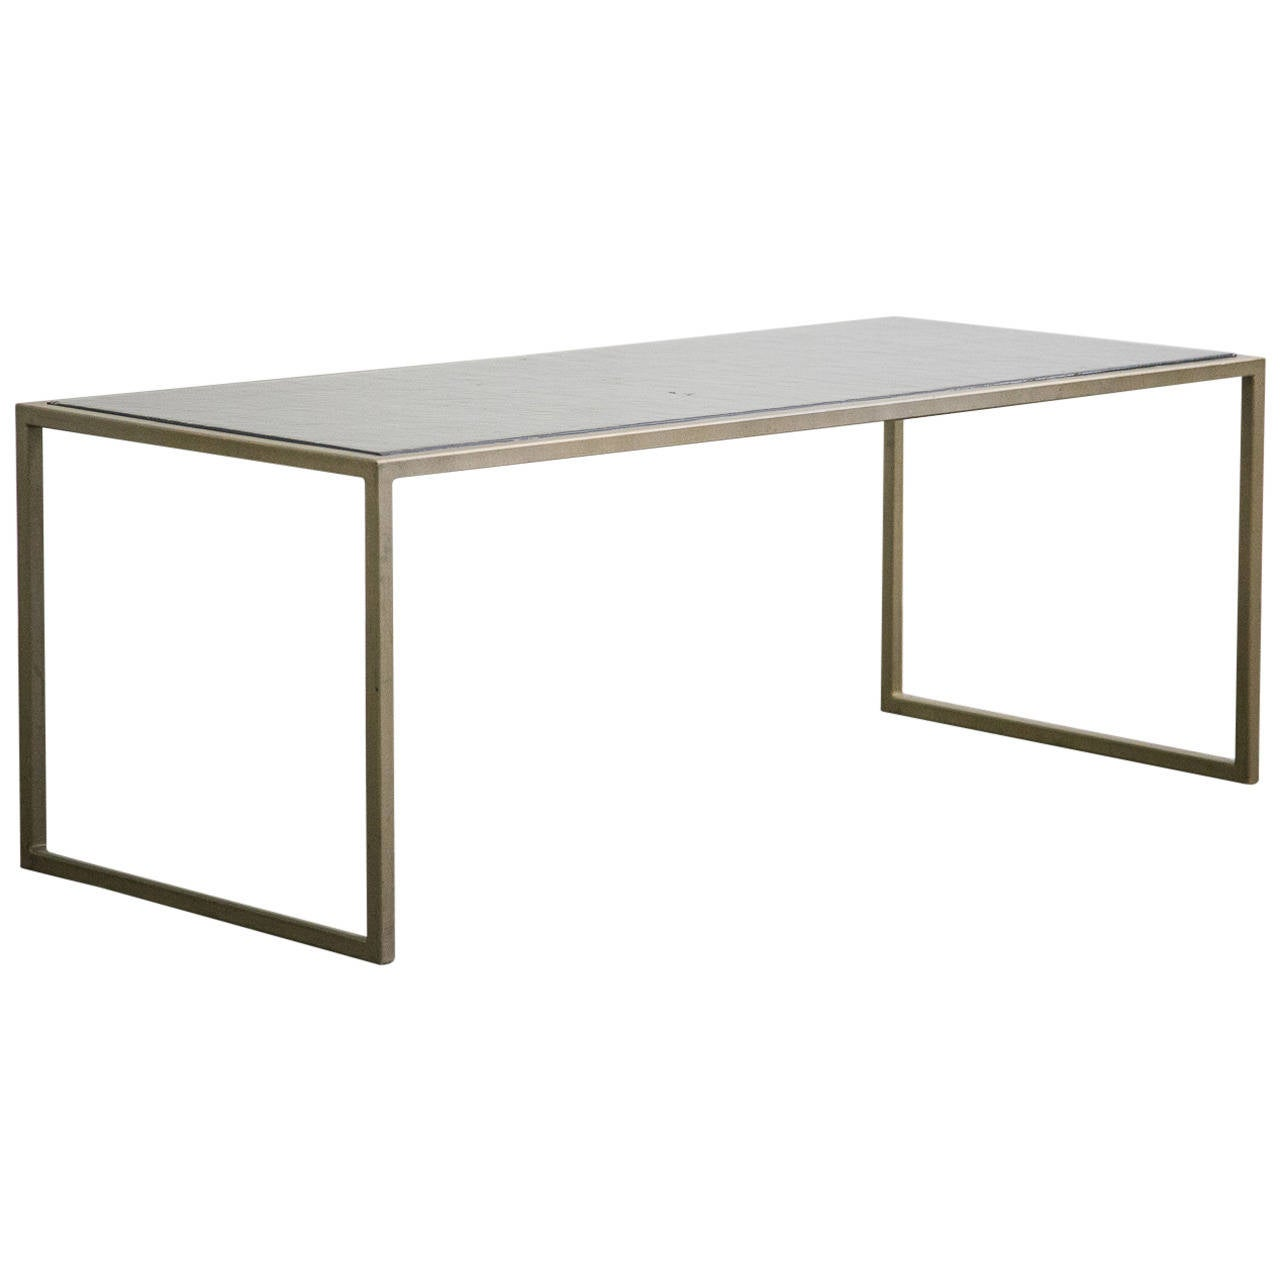 Philippe starck designed coffee table paris circa 1985 for Philippe starck glass table